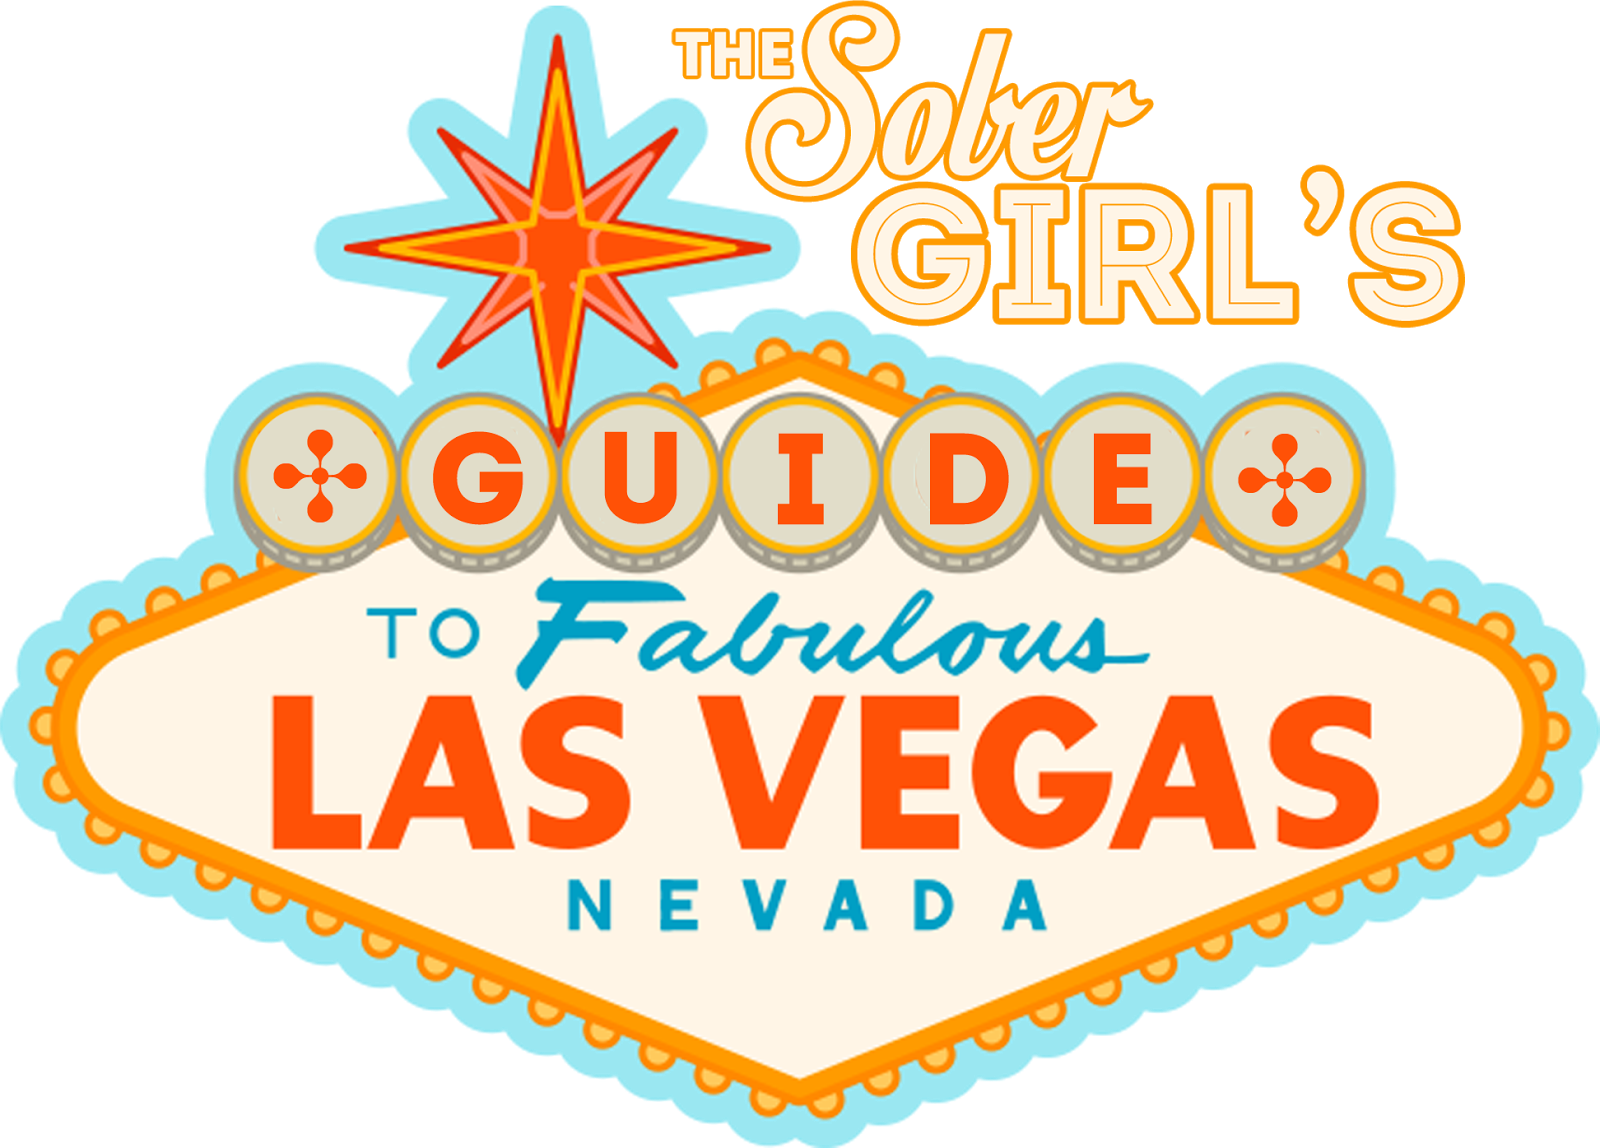 http://selfbindingretrospect.alannarusnak.com/2014/09/the-sober-girls-guide-to-las-vegas.html